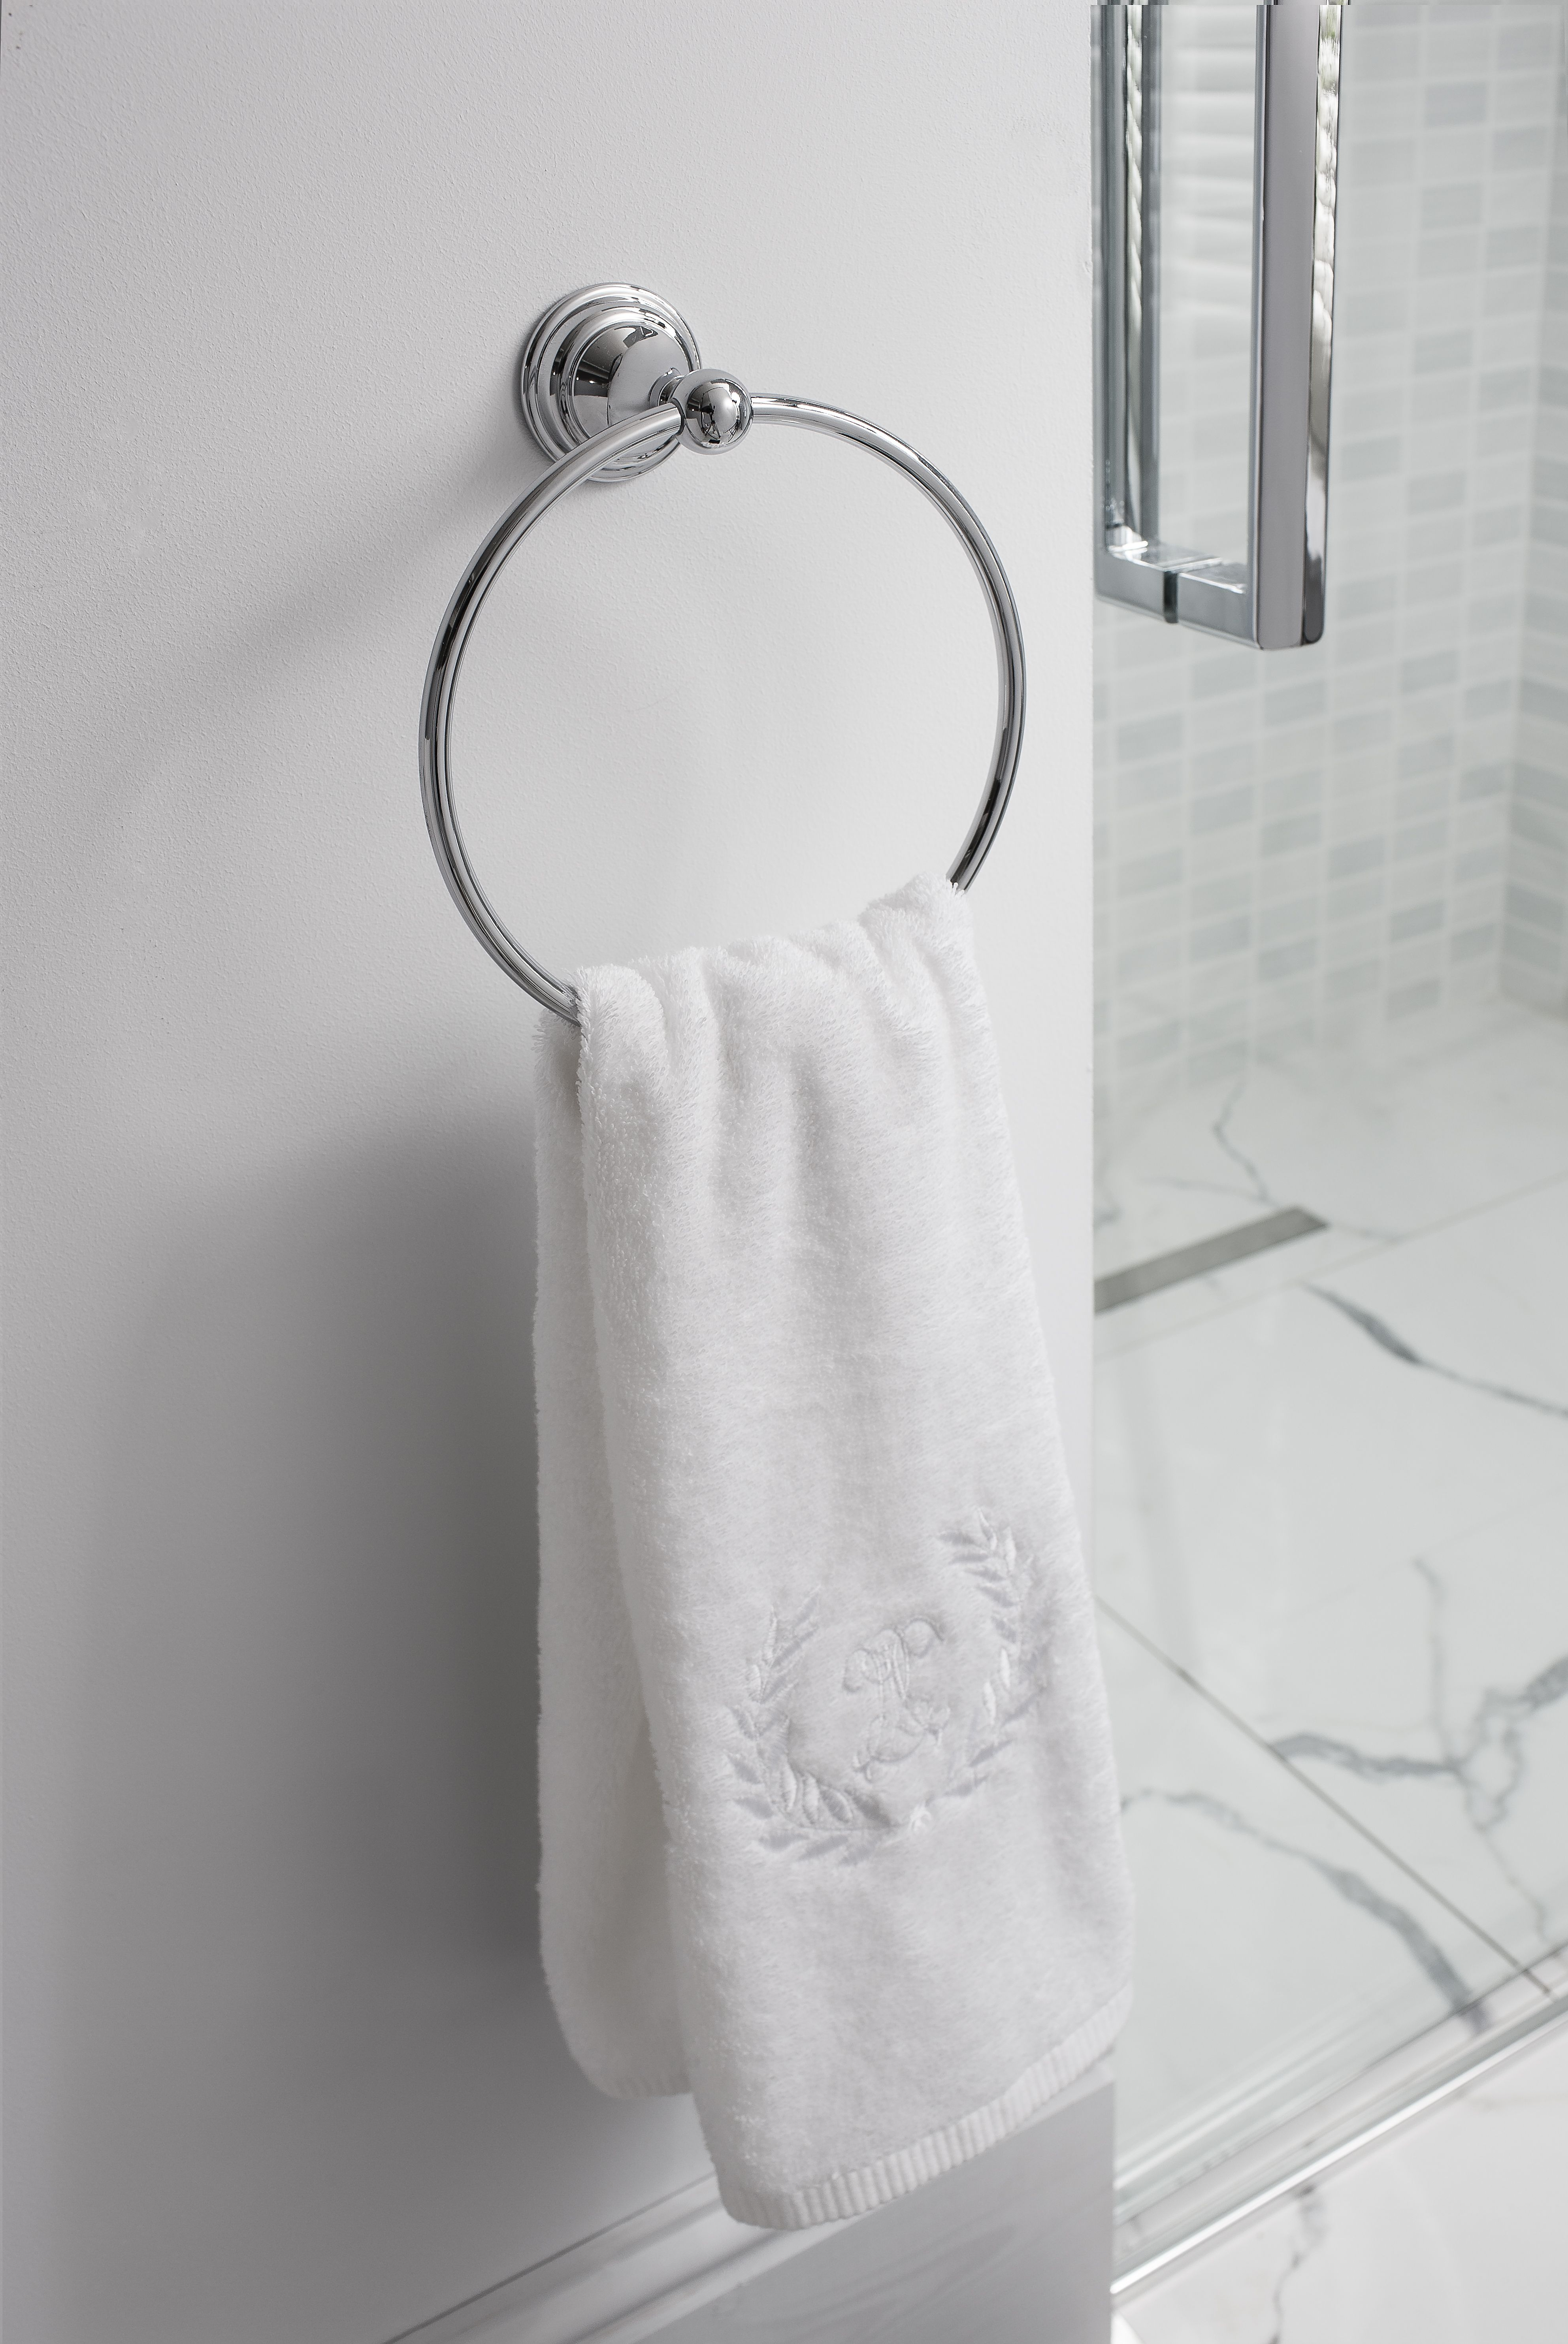 Luxury accessories to suit your bathroom - Belgravia towel ring from ...